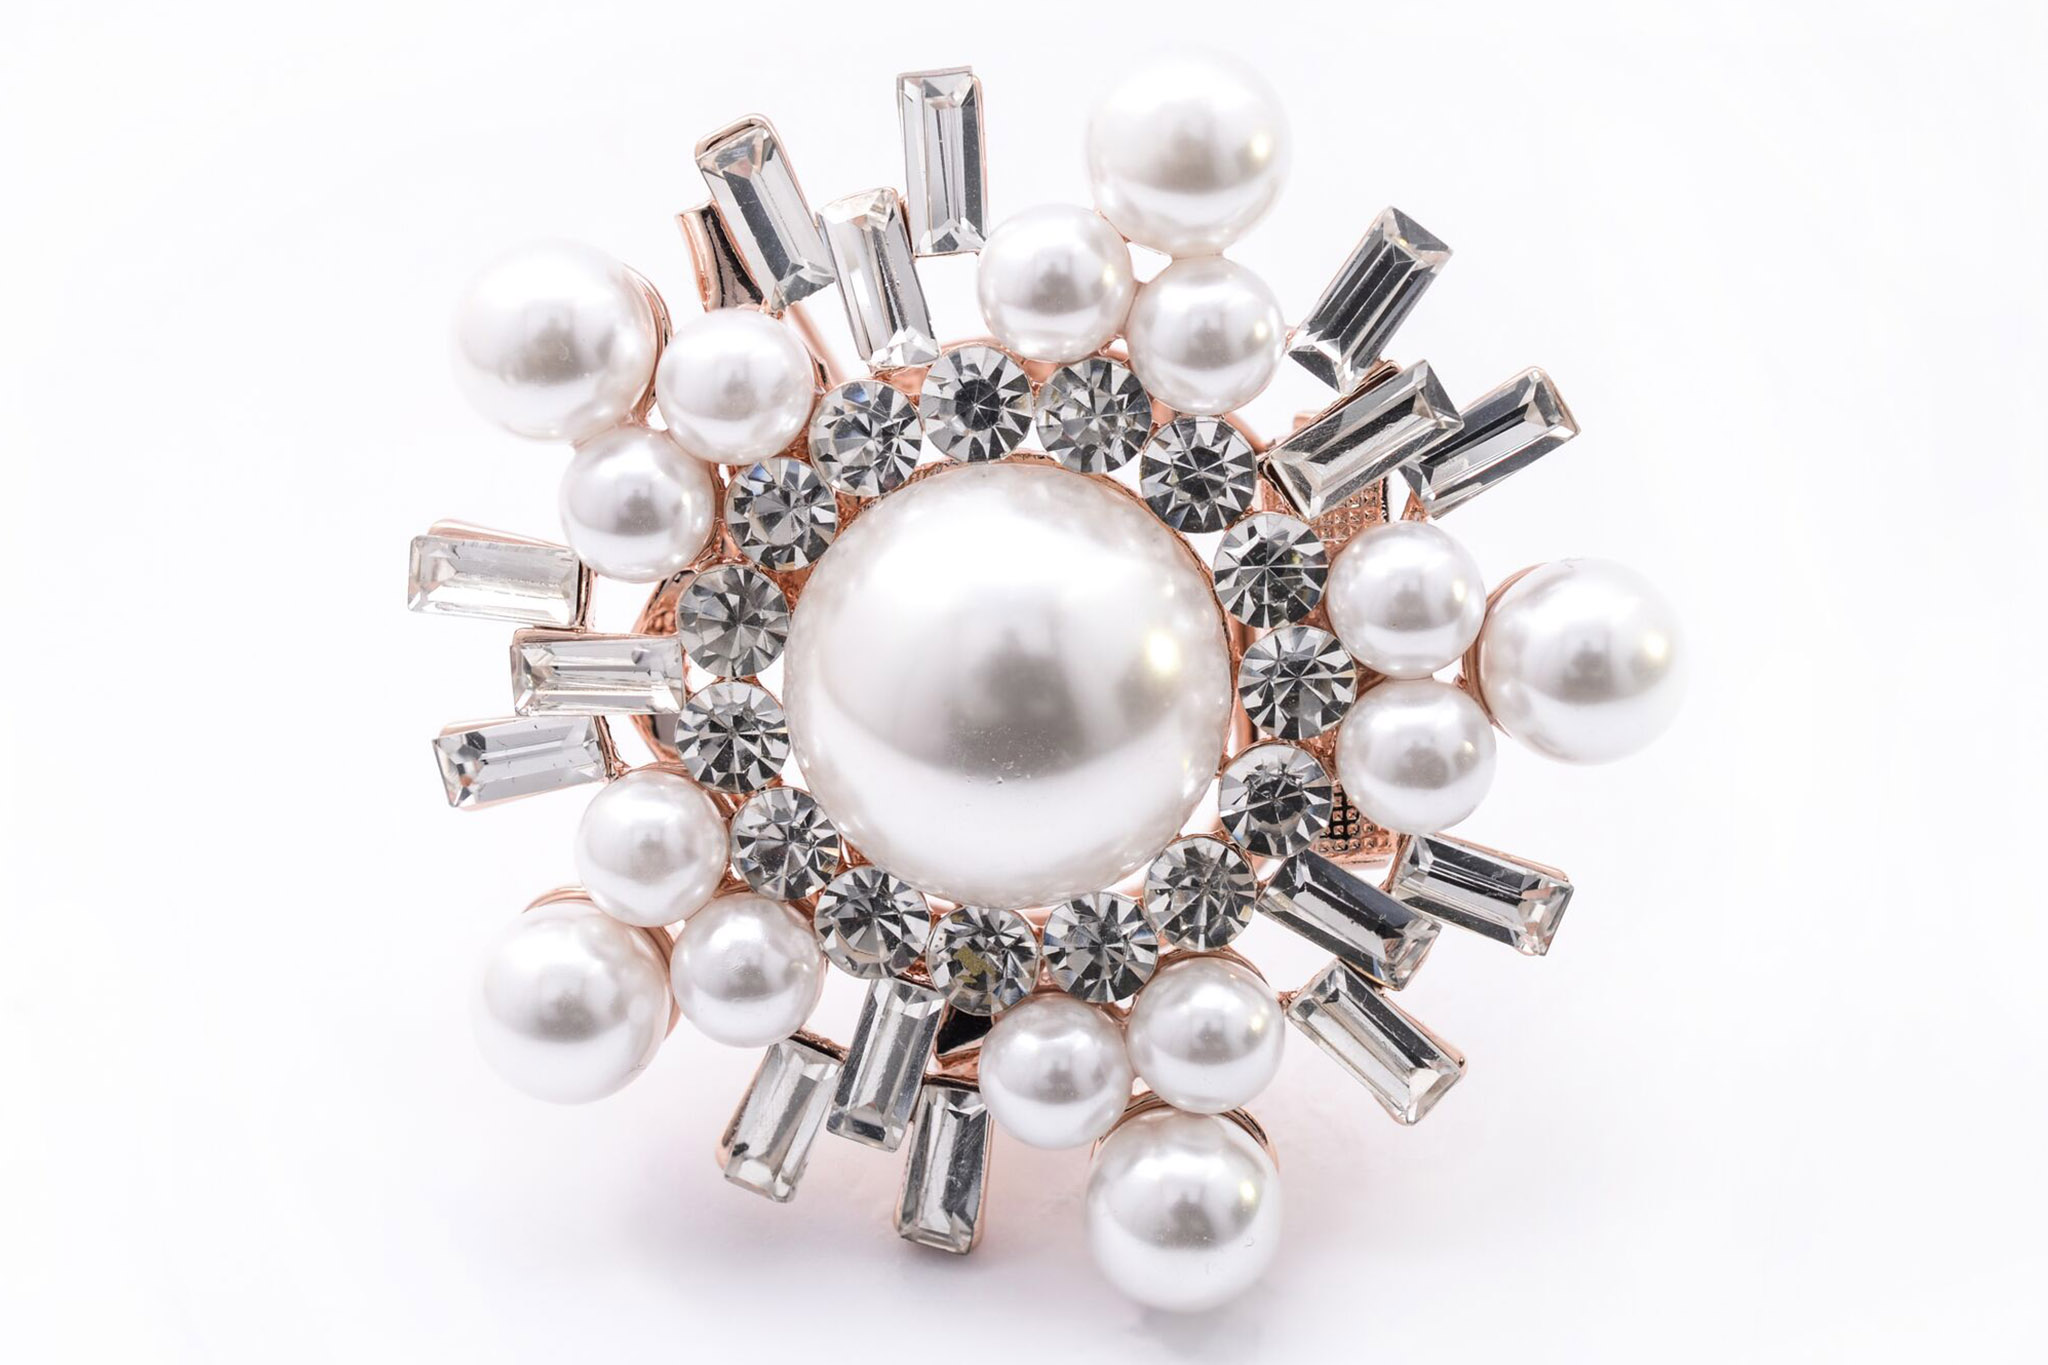 Brooches are back in vogue